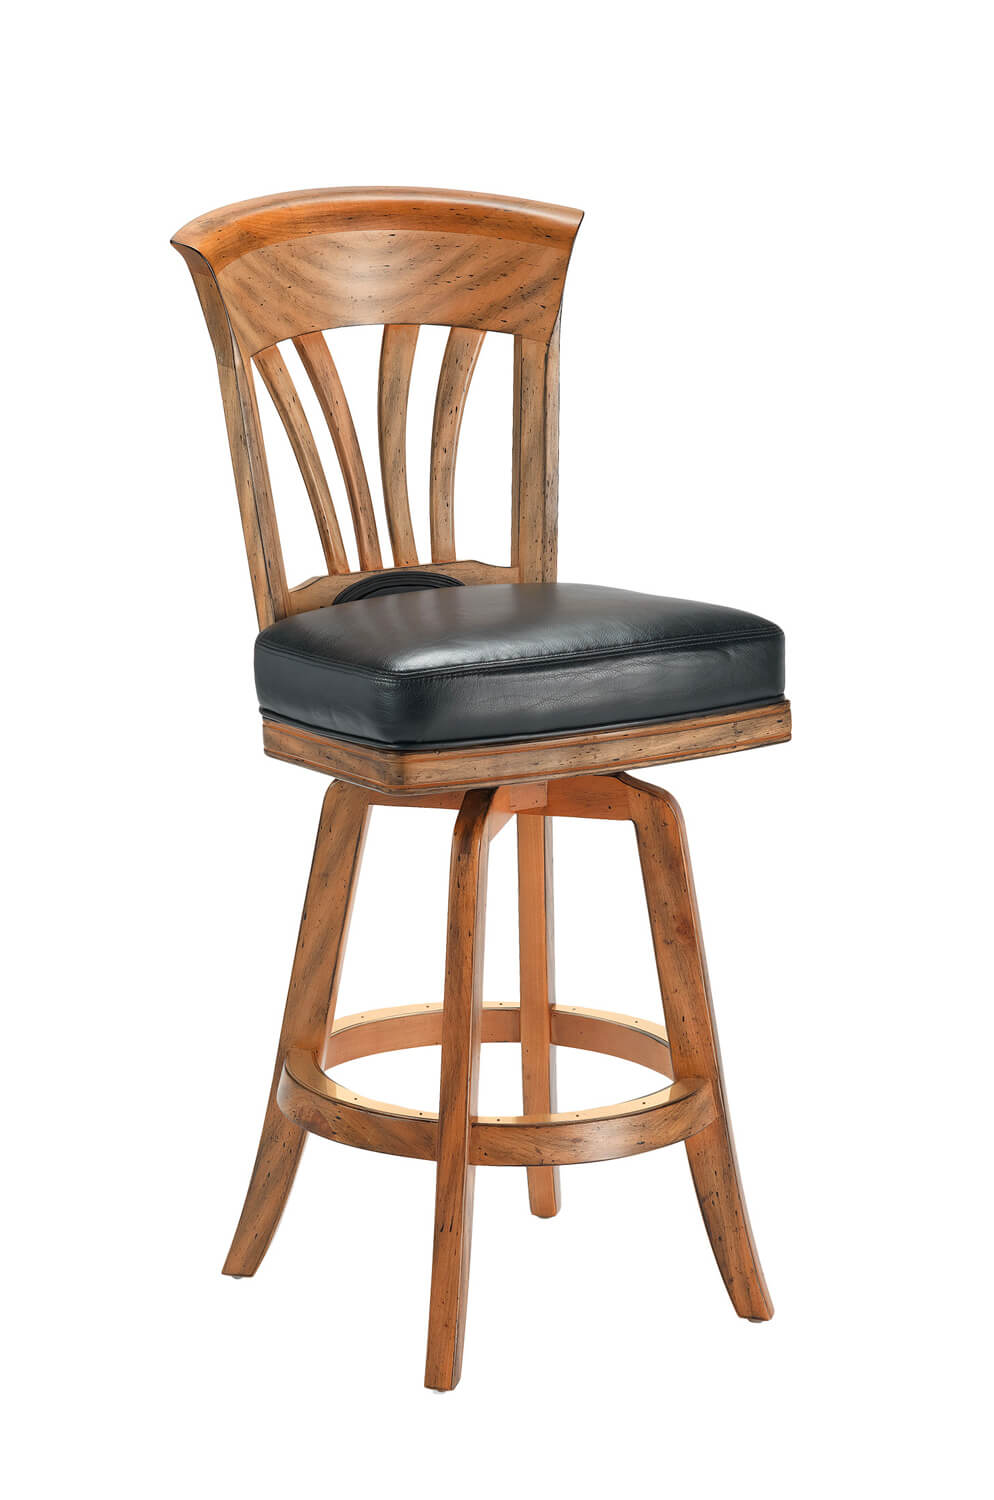 Nomad Maple Wood Upholstered Flexback Swivel Stool